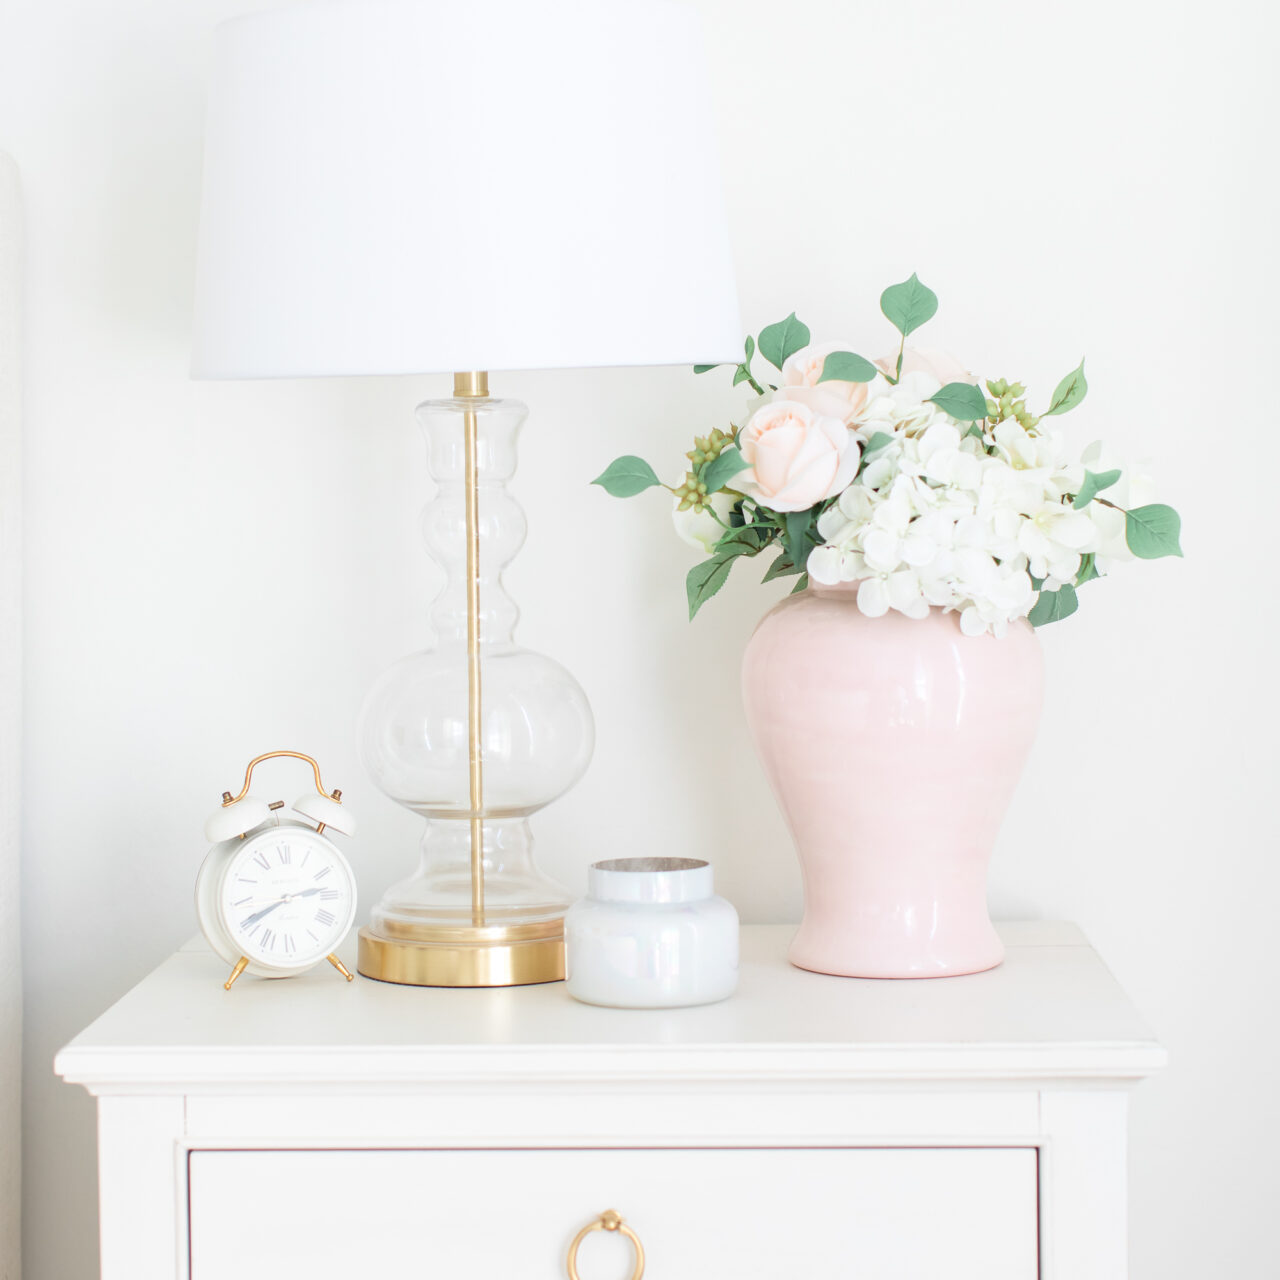 Spring refresh for nightstands